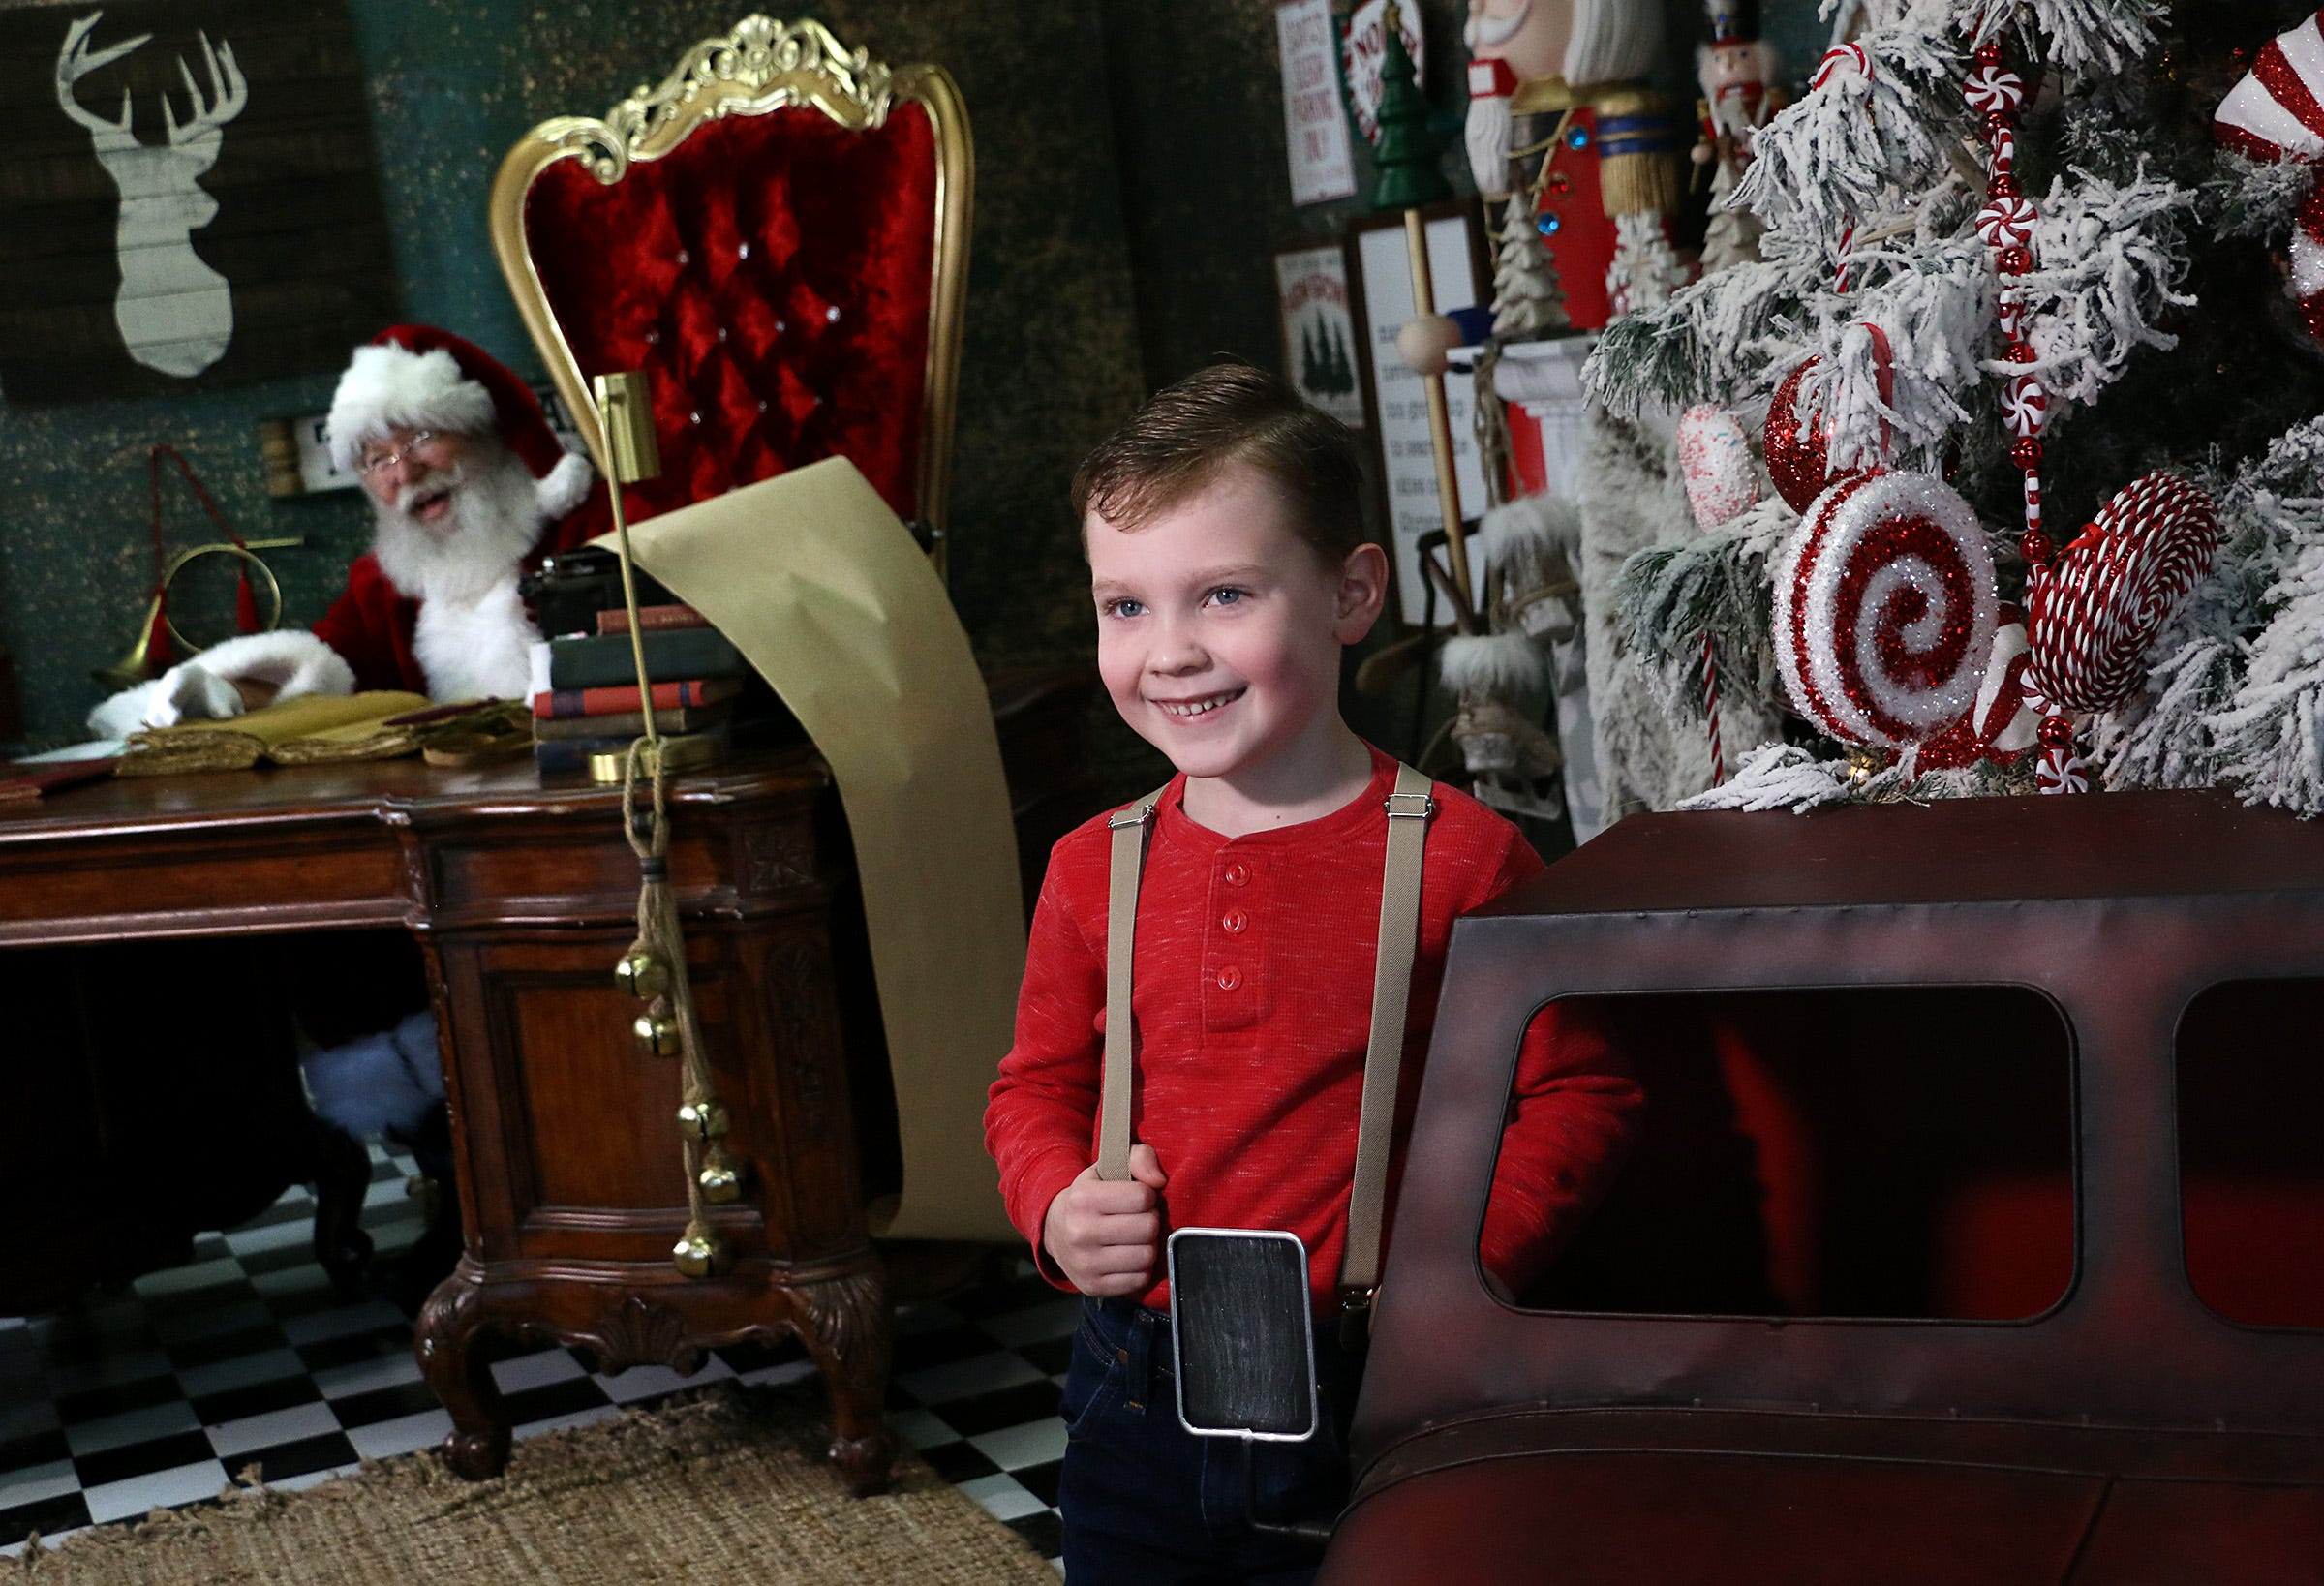 6 year old William Hopper poses for a portrait near Santa while visiting the Santa Experience with GMH Photography in Reno on Dec. 5, 2020.